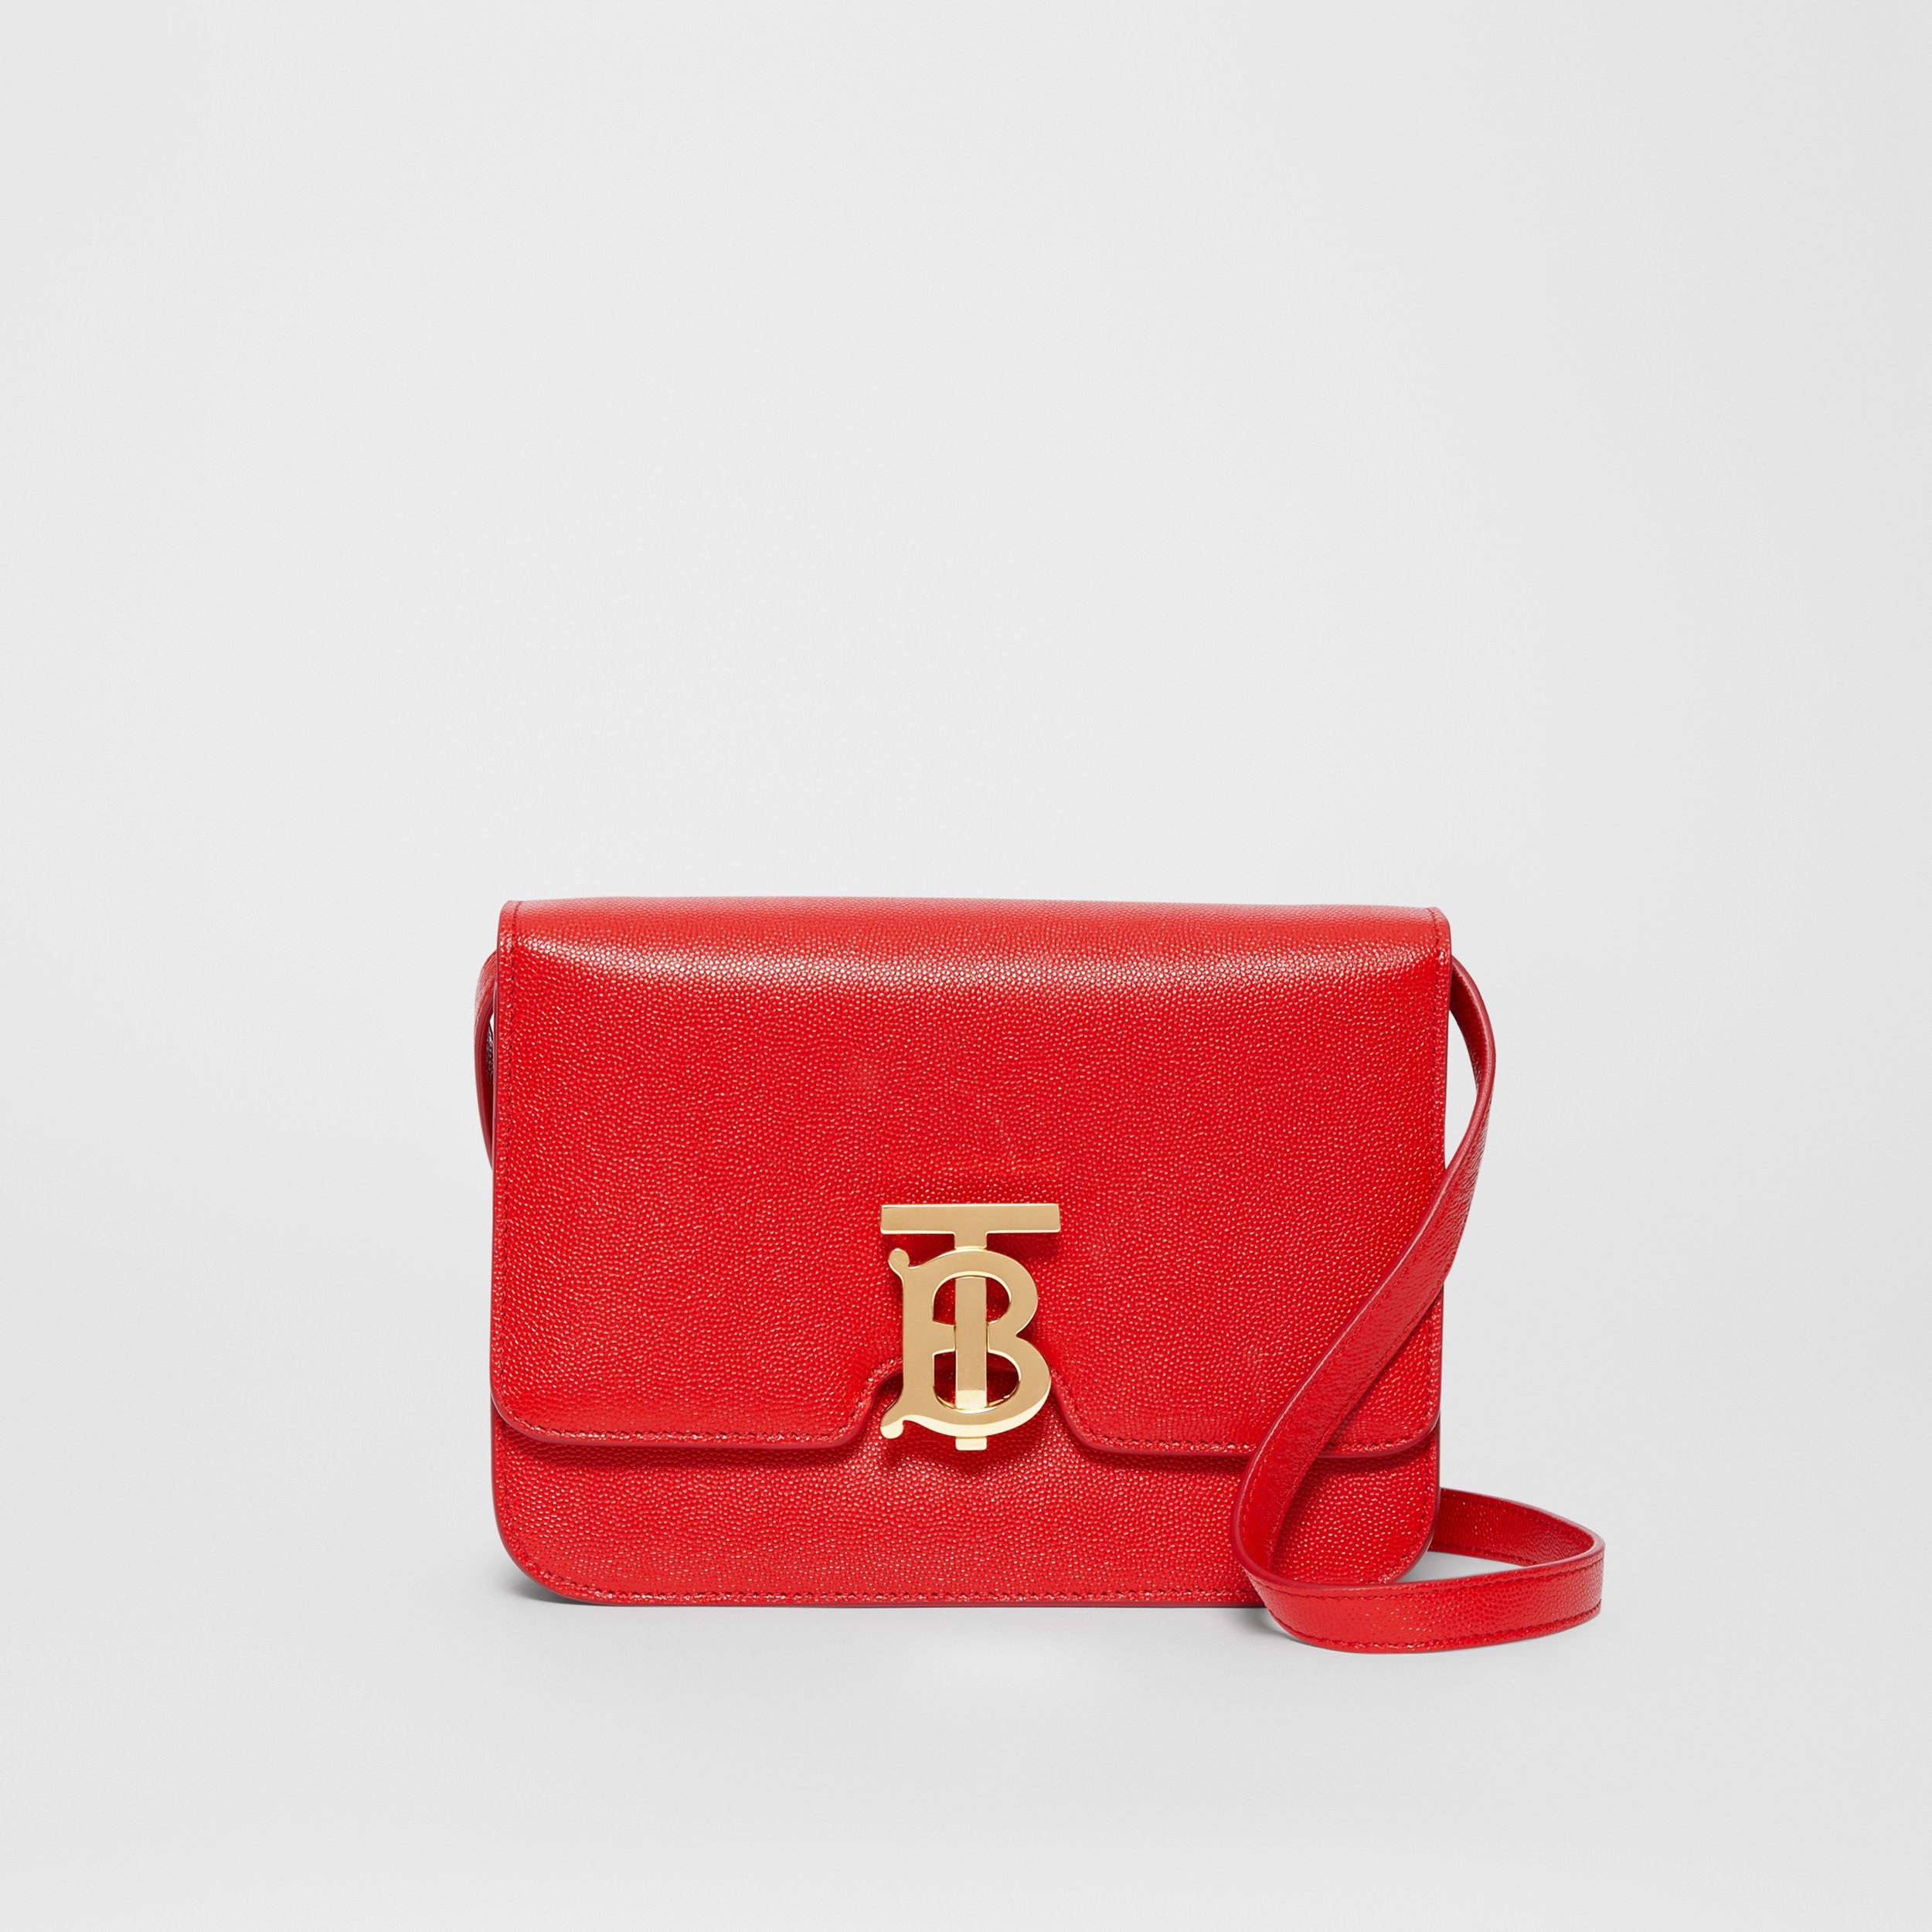 Small Grainy Leather TB Bag in Bright Red - Women | Burberry - 1